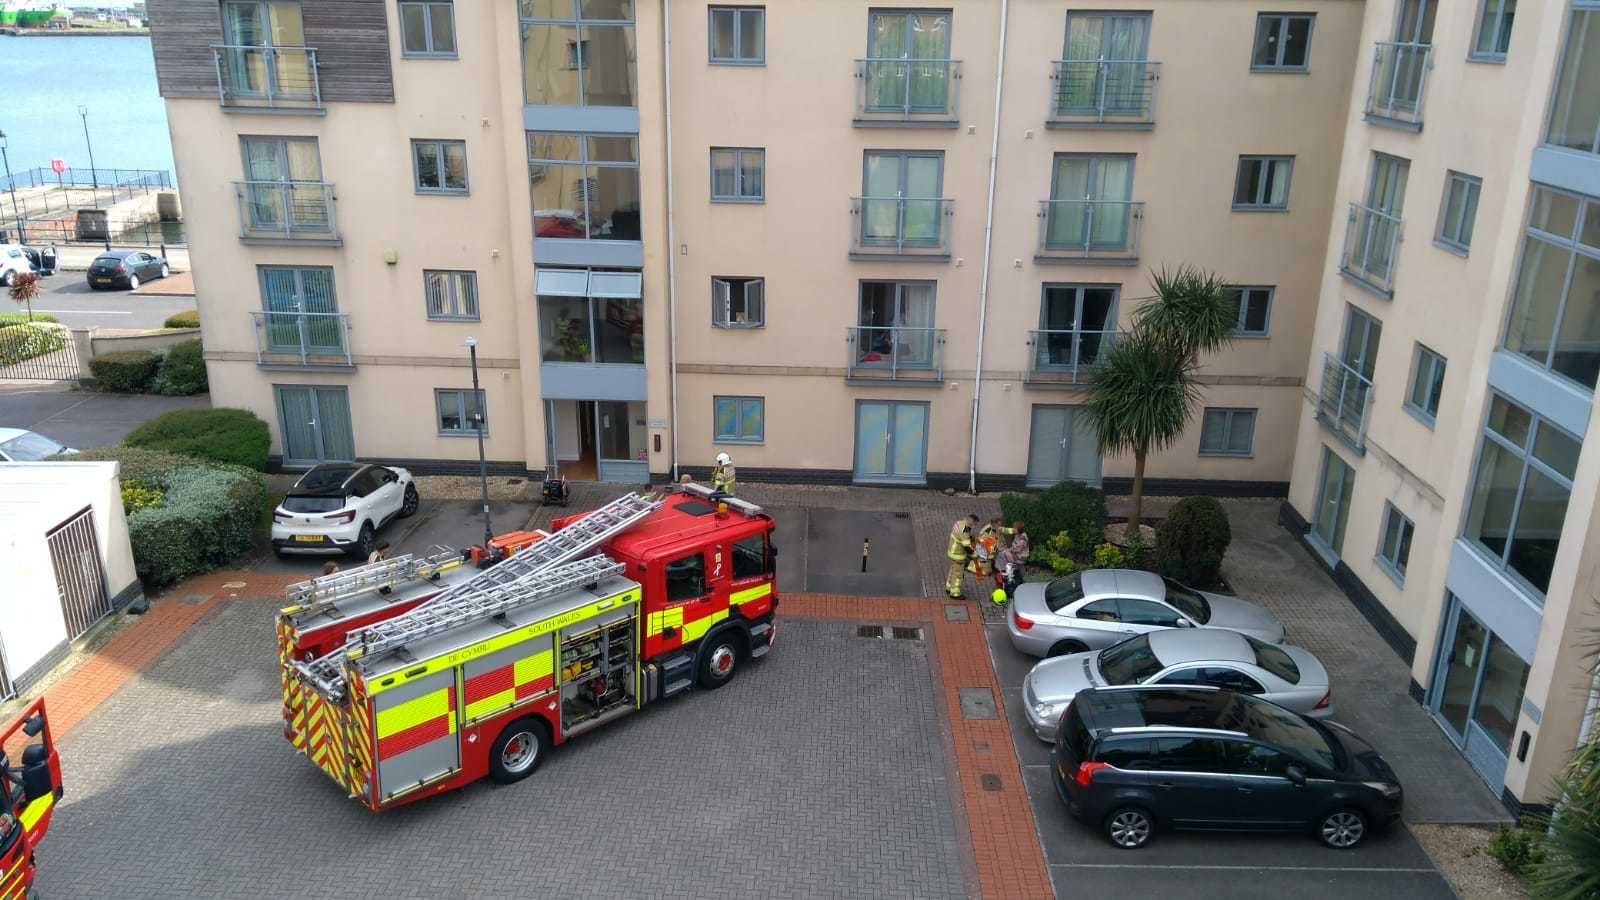 SWFRS at the scene in Barry